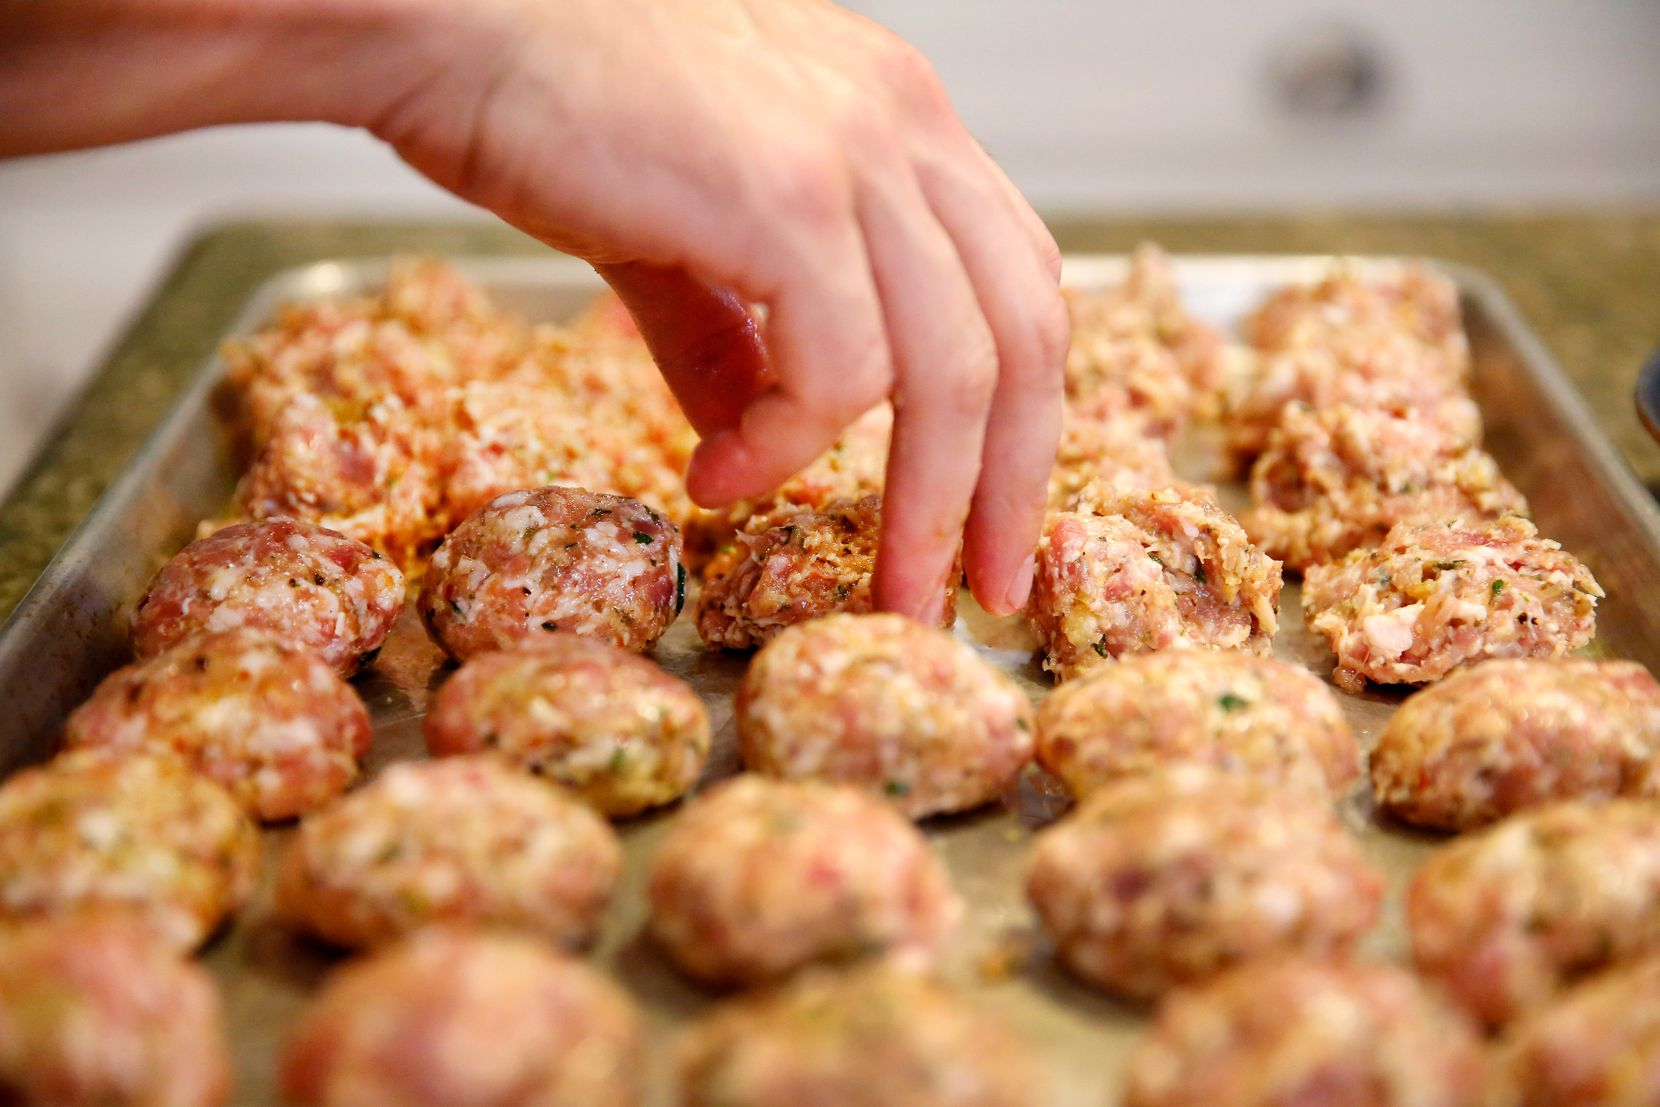 Restaurant owner and chef Julian Barsotti rolls rows of chicken thighs and pork belly meatballs in his hands as he prepares for the elaborate, multi-layered Italian dish known as a timpano at his Highland Park home. (Tom Fox/The Dallas Morning News)